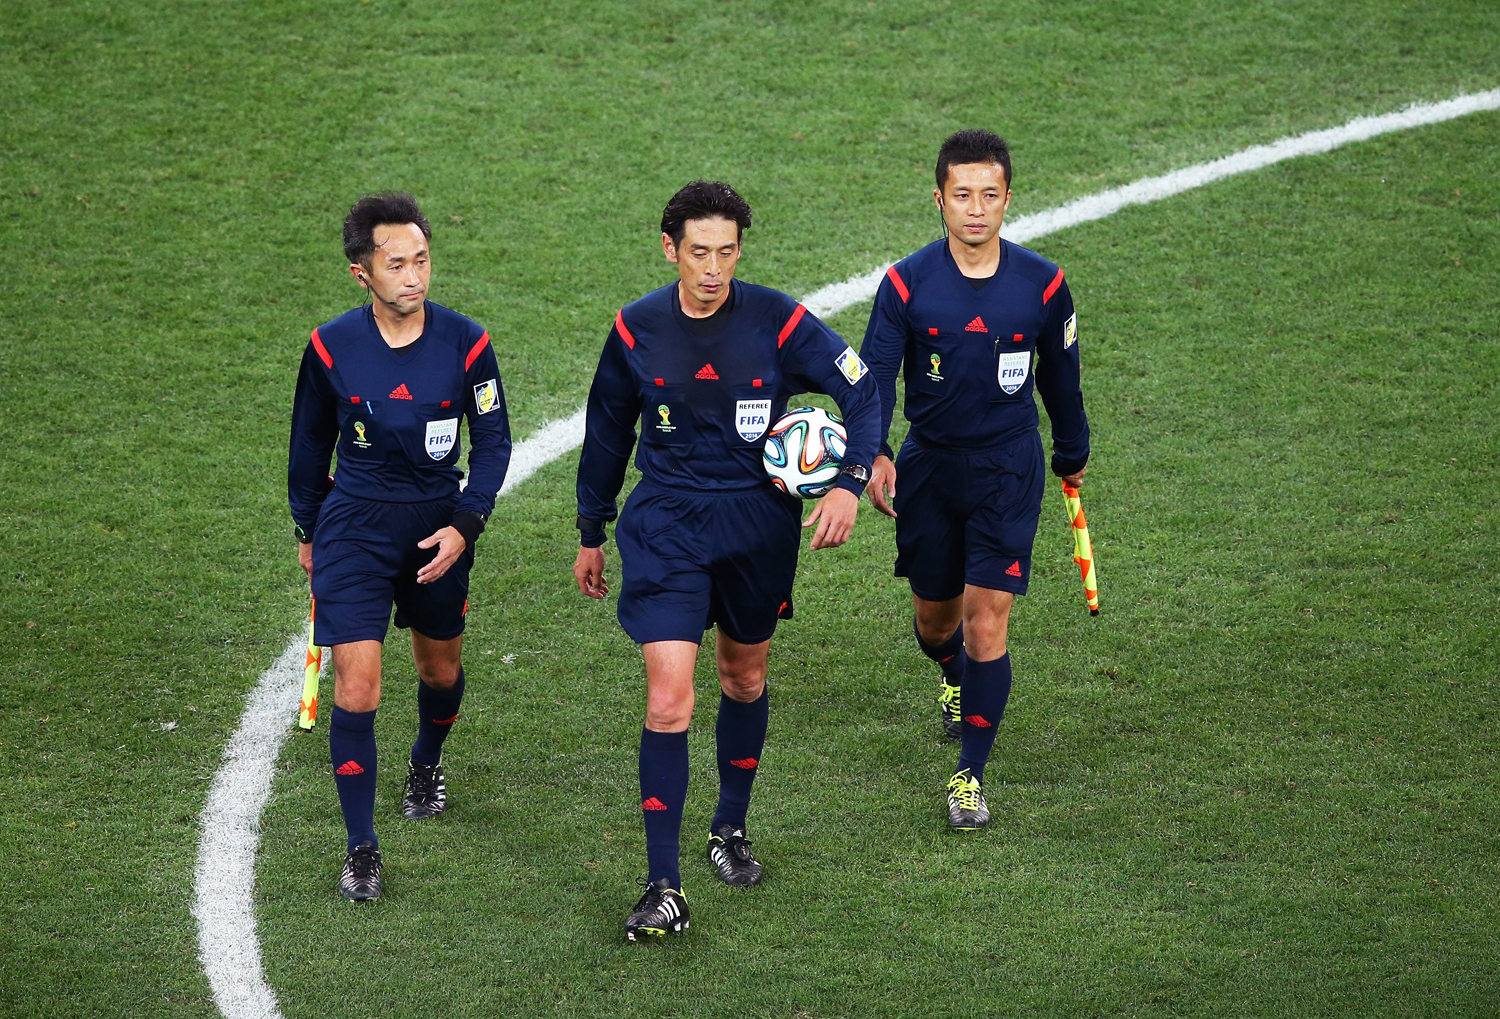 Assistant referee Toshiyuki Nagi, referee Yuichi Nishimura and assistant referee Toru Sagara of Japan walk on the field at the end of the match during the 2014 FIFA World Cup Brazil Group A match between Brazil and Croatia at Arena de Sao Paulo on June 12, 2014 in Sao Paulo.